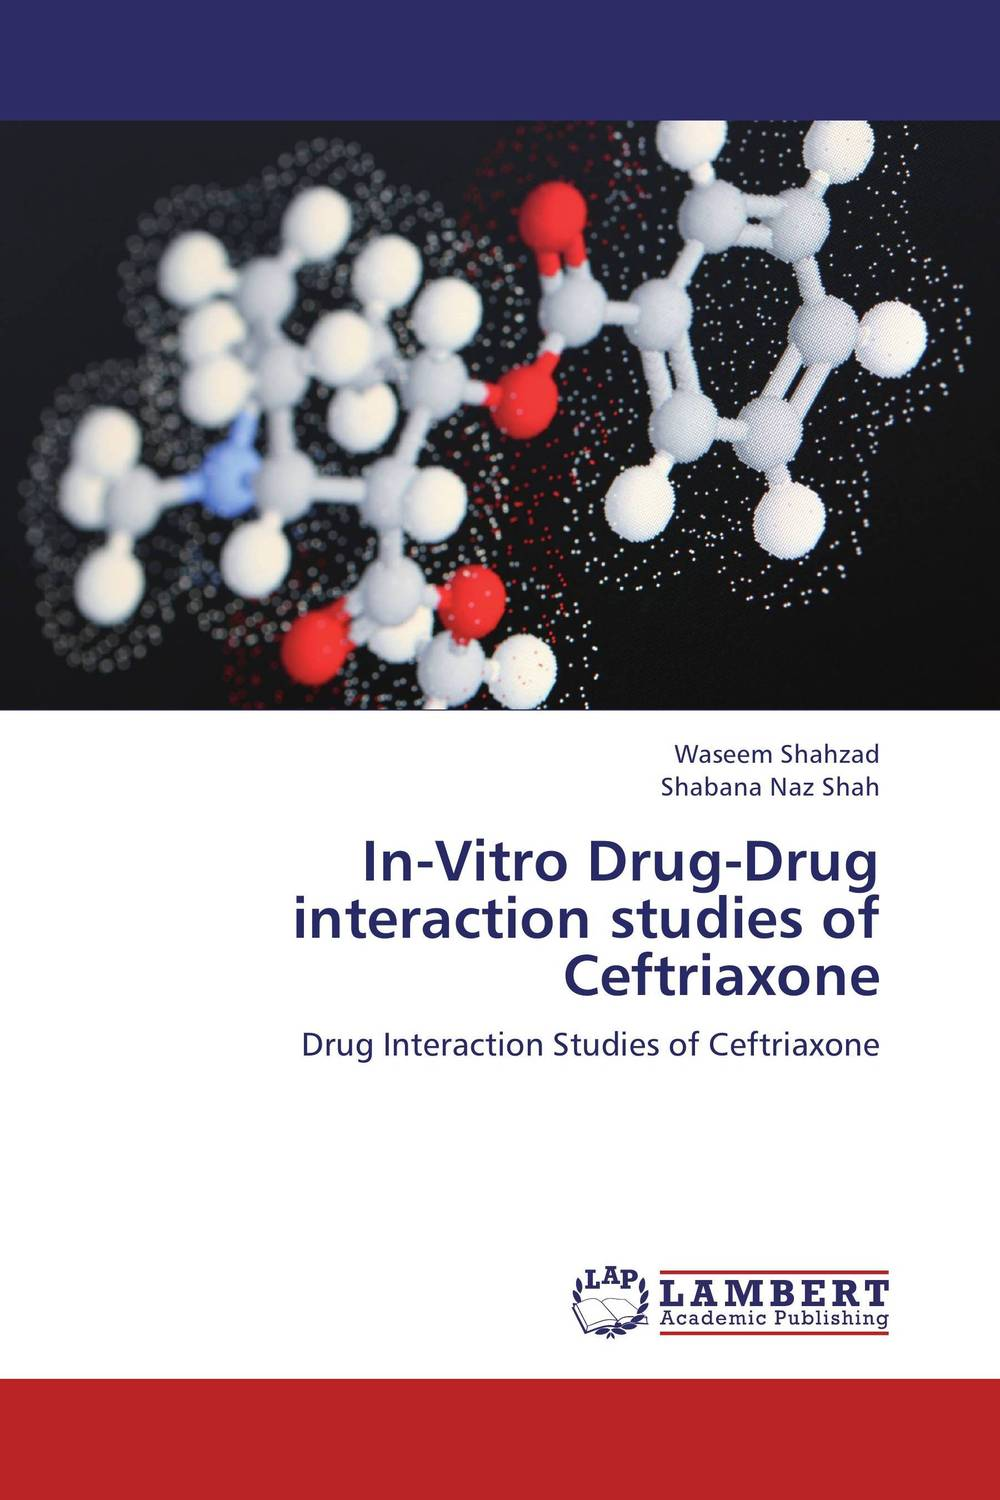 In-Vitro Drug-Drug interaction studies of Ceftriaxone modified pnas synthesis and interaction studies with dna